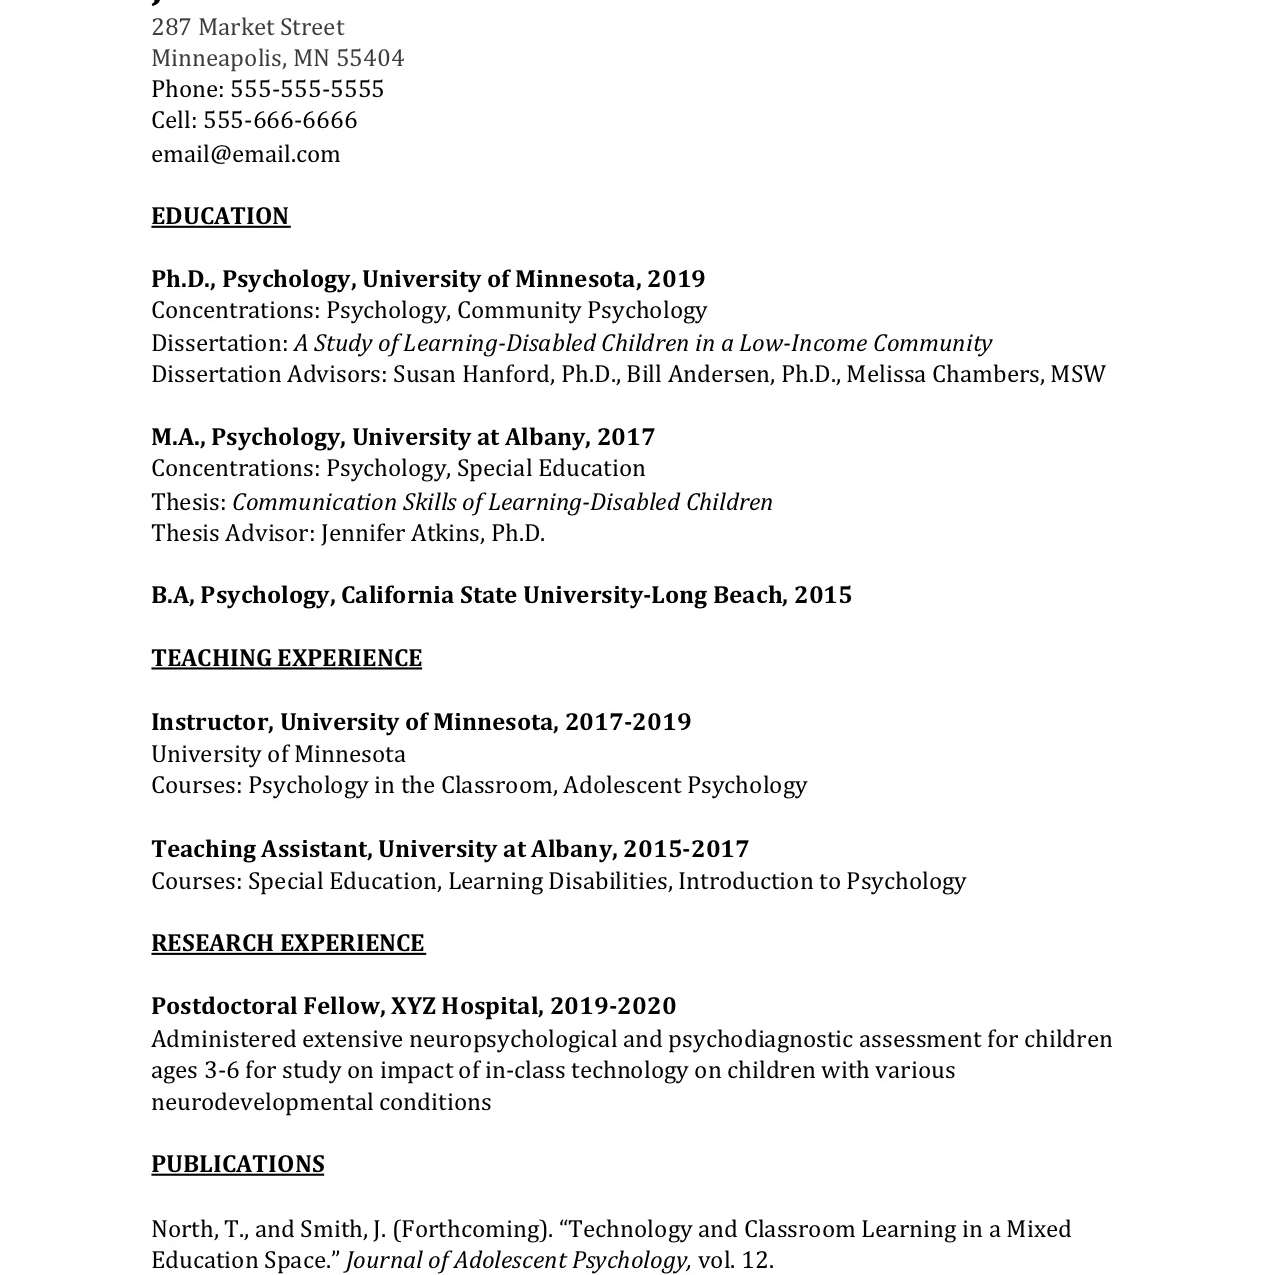 academic curriculum vitae cv example and writing tips listing publications on resume Resume Listing Publications On Resume